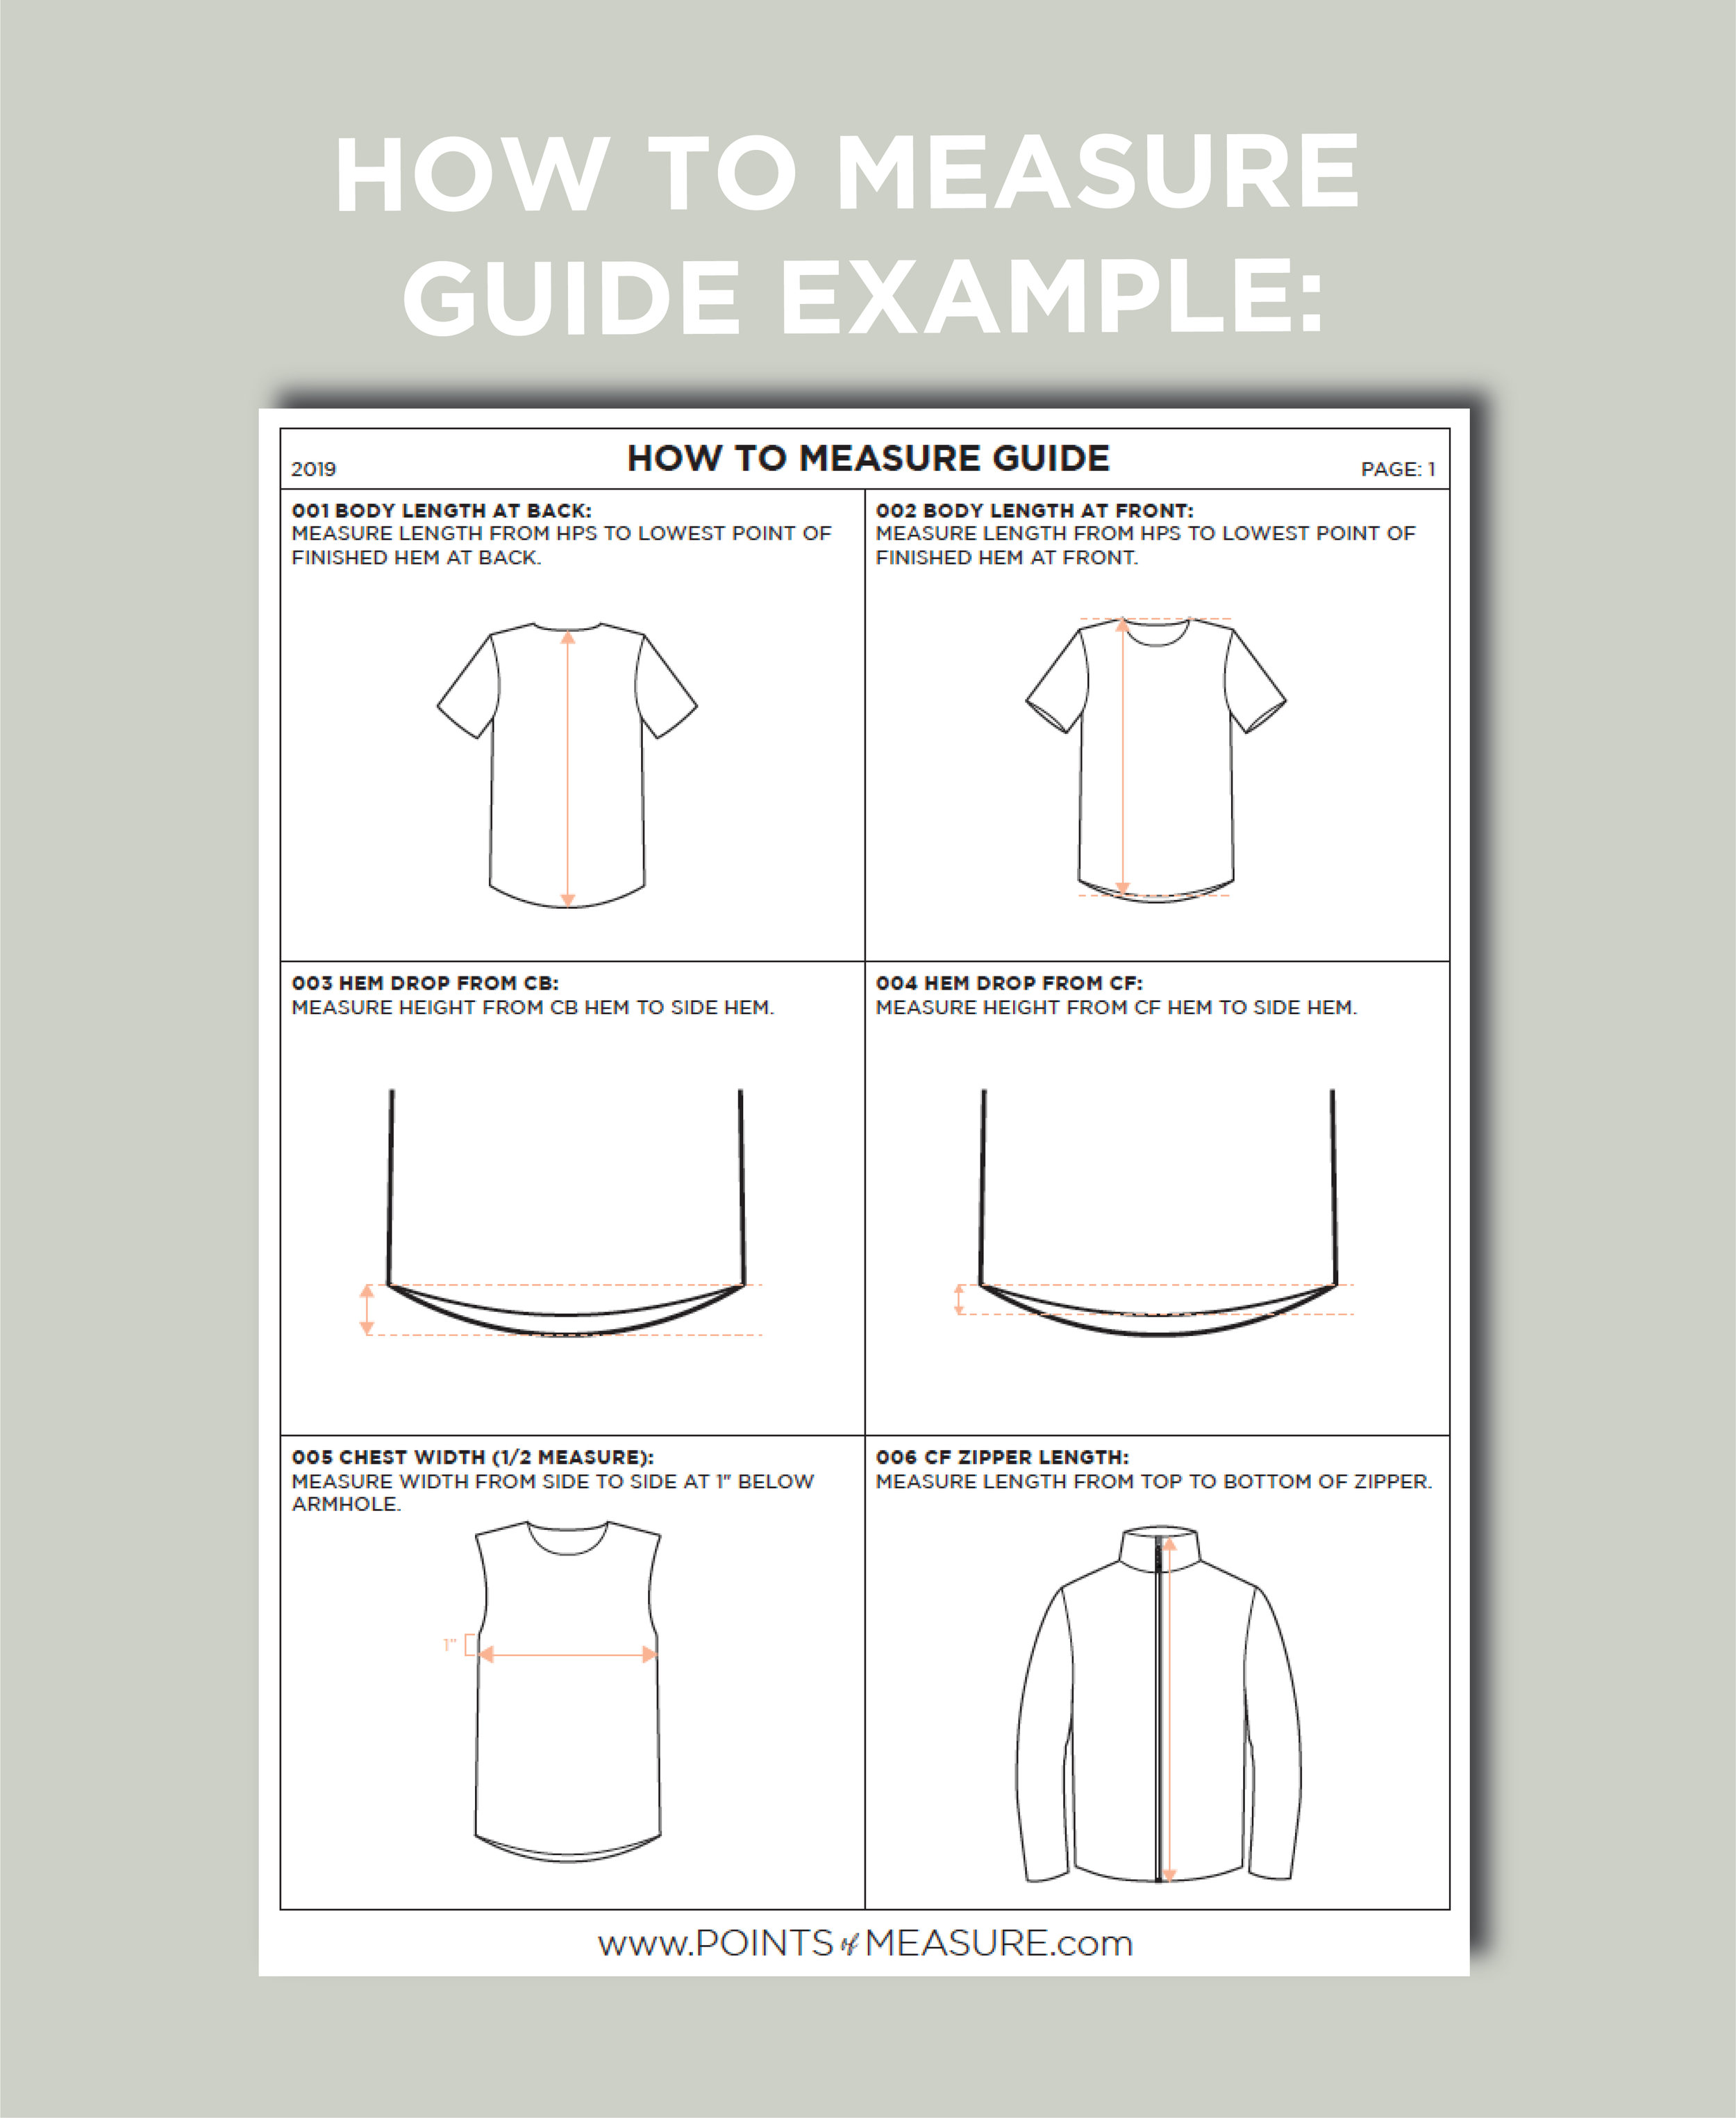 how-to-measure-guide-example-points-of-measure.jpg